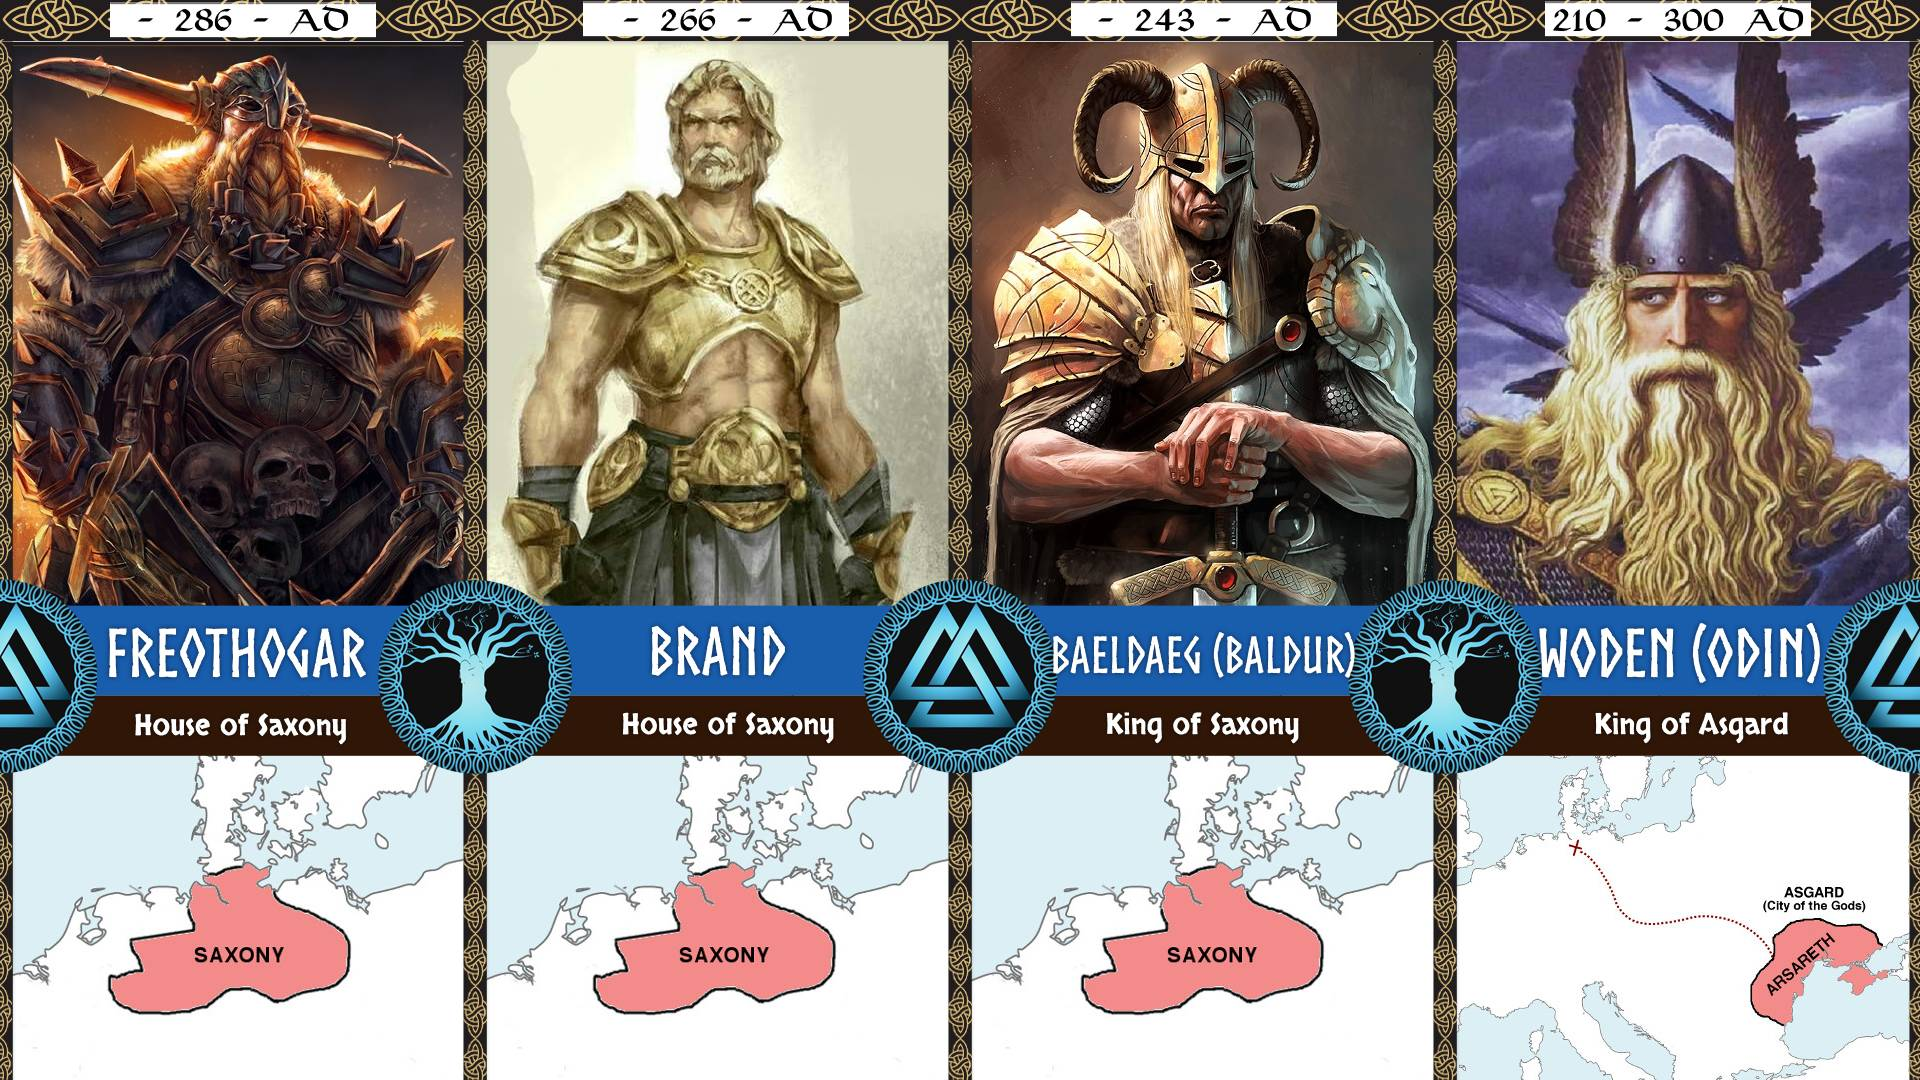 ODIN'S ANCESTRY An Amazing Timeline Going Back to 2000BC!